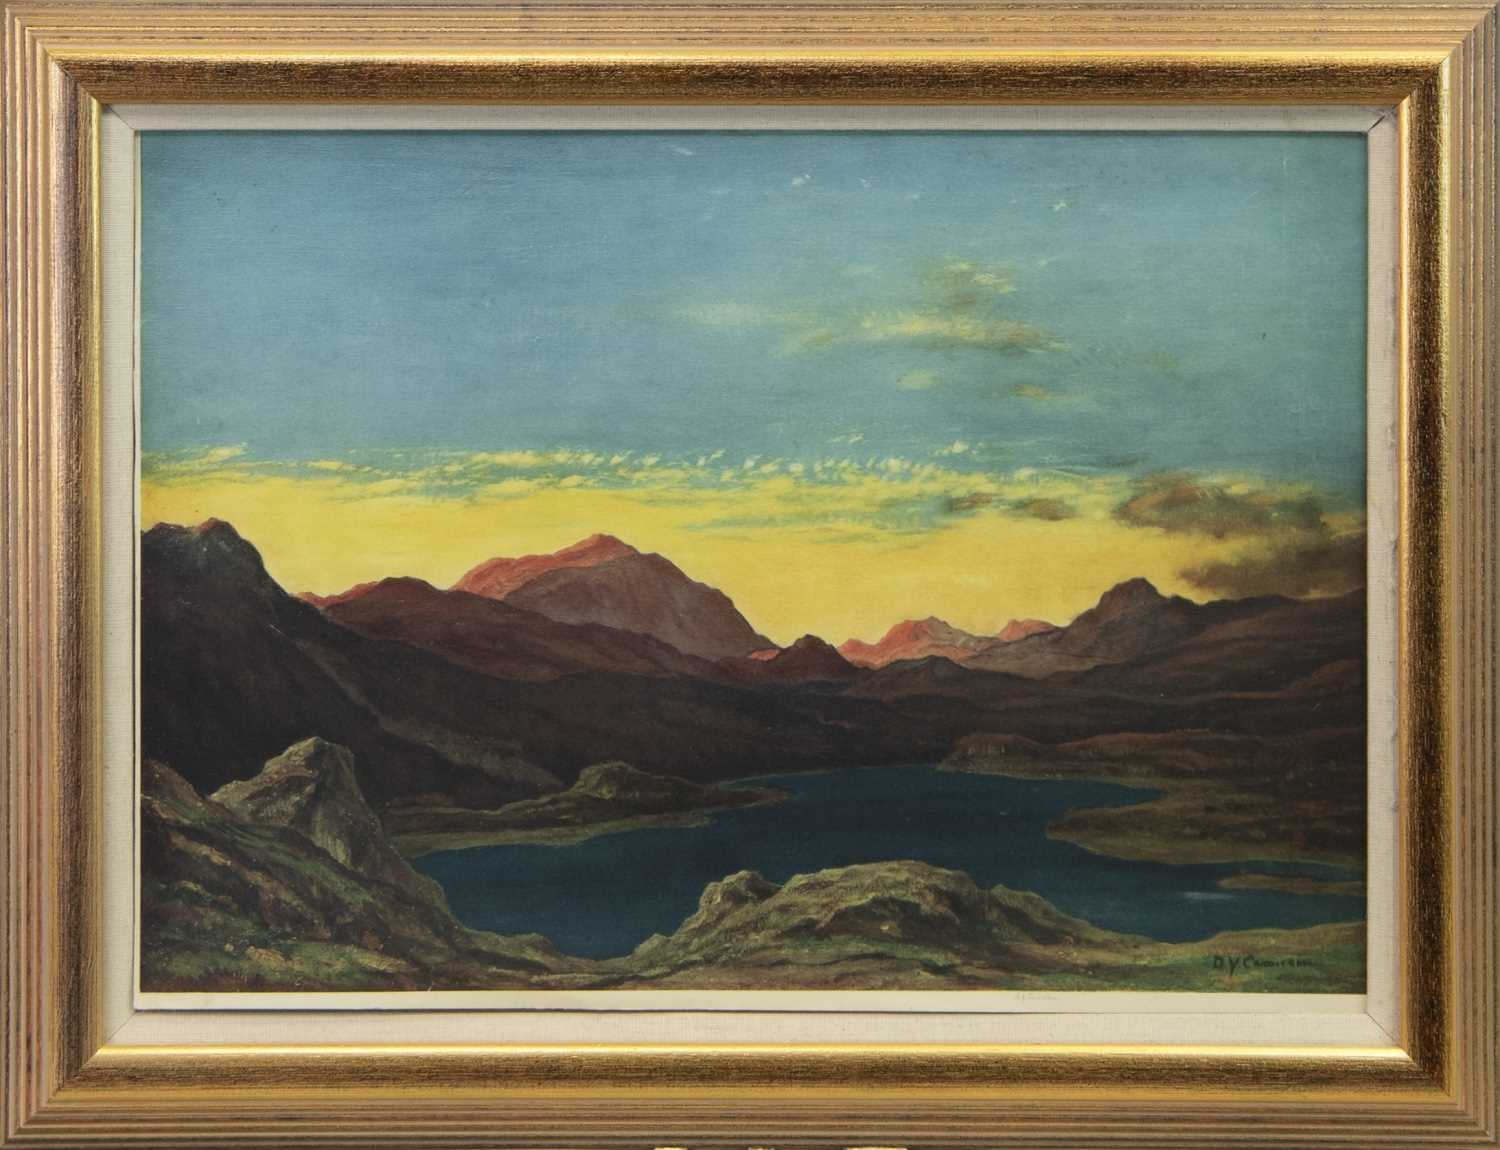 Lot 26 - SUNSET AT THE LOCH, A LITHOGRAPH BY D Y CAMERON